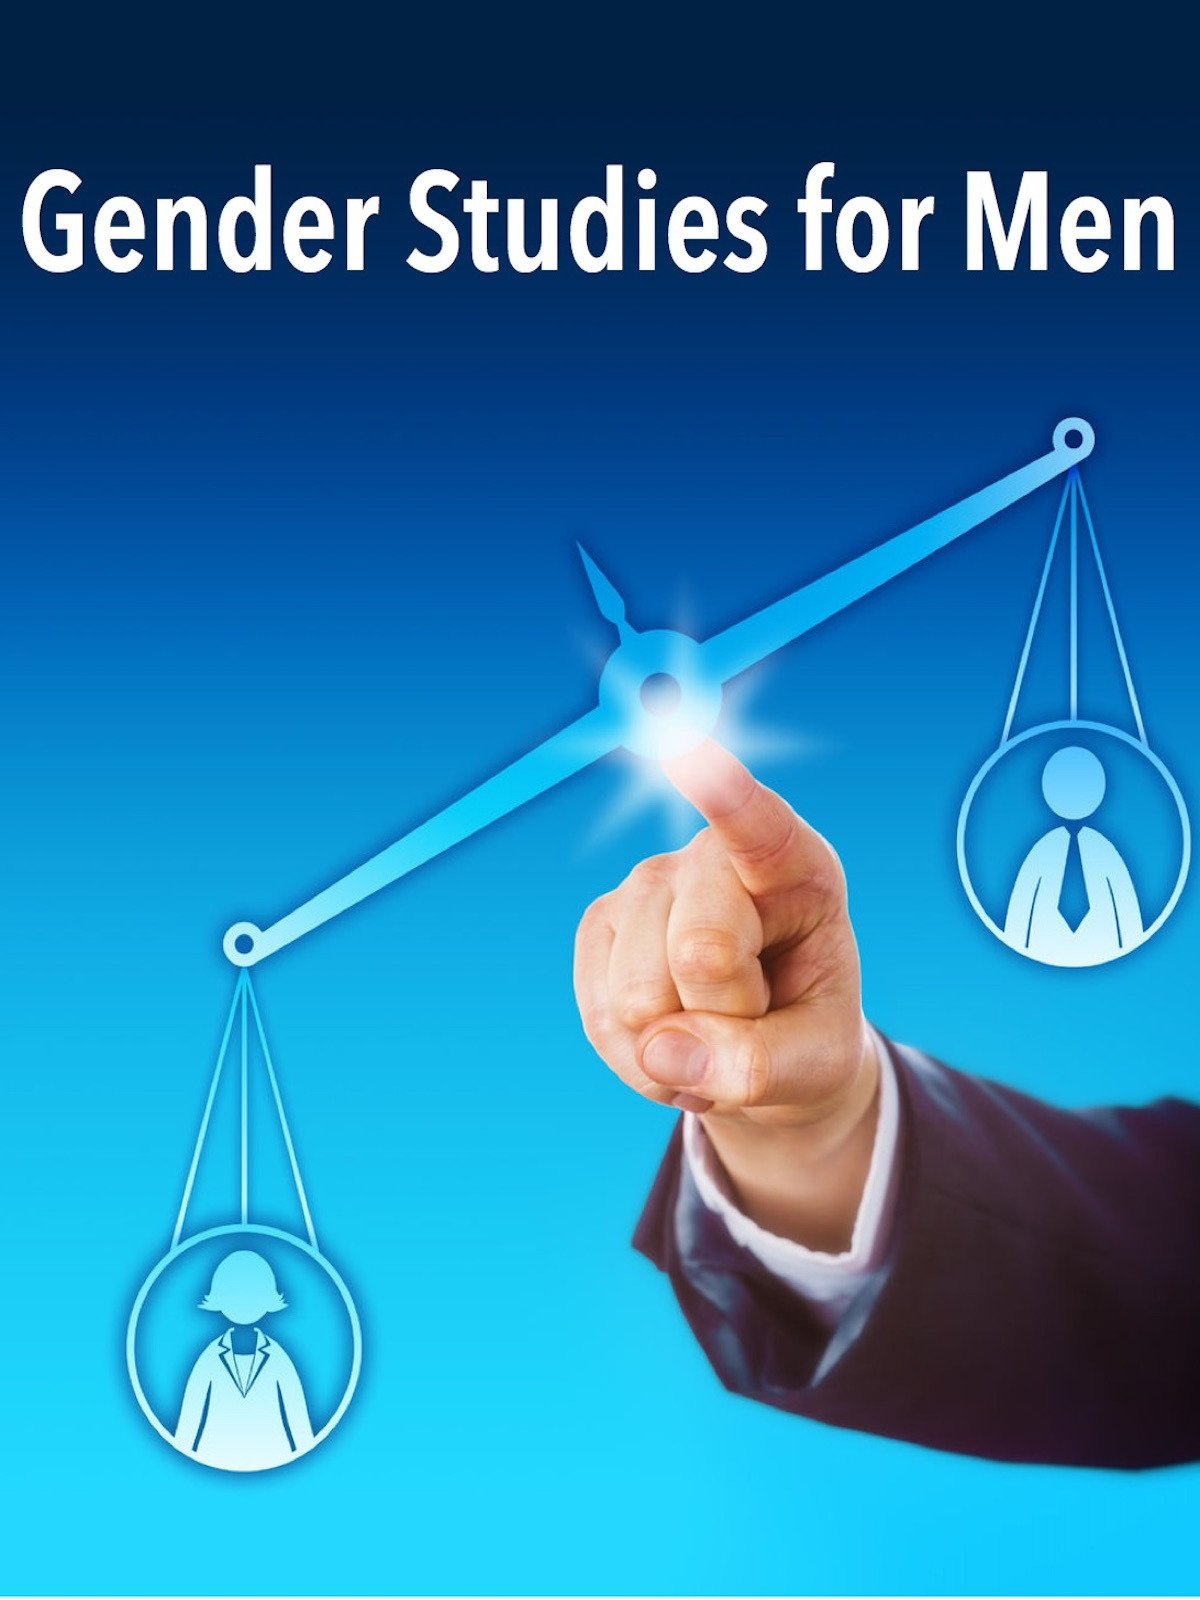 gender study Women's and gender studies at the university of michigan dearborn is a vibrant interdisciplinary community of faculty, students and alumni dedicated to excellence in scholarship, teaching, learning and activism.